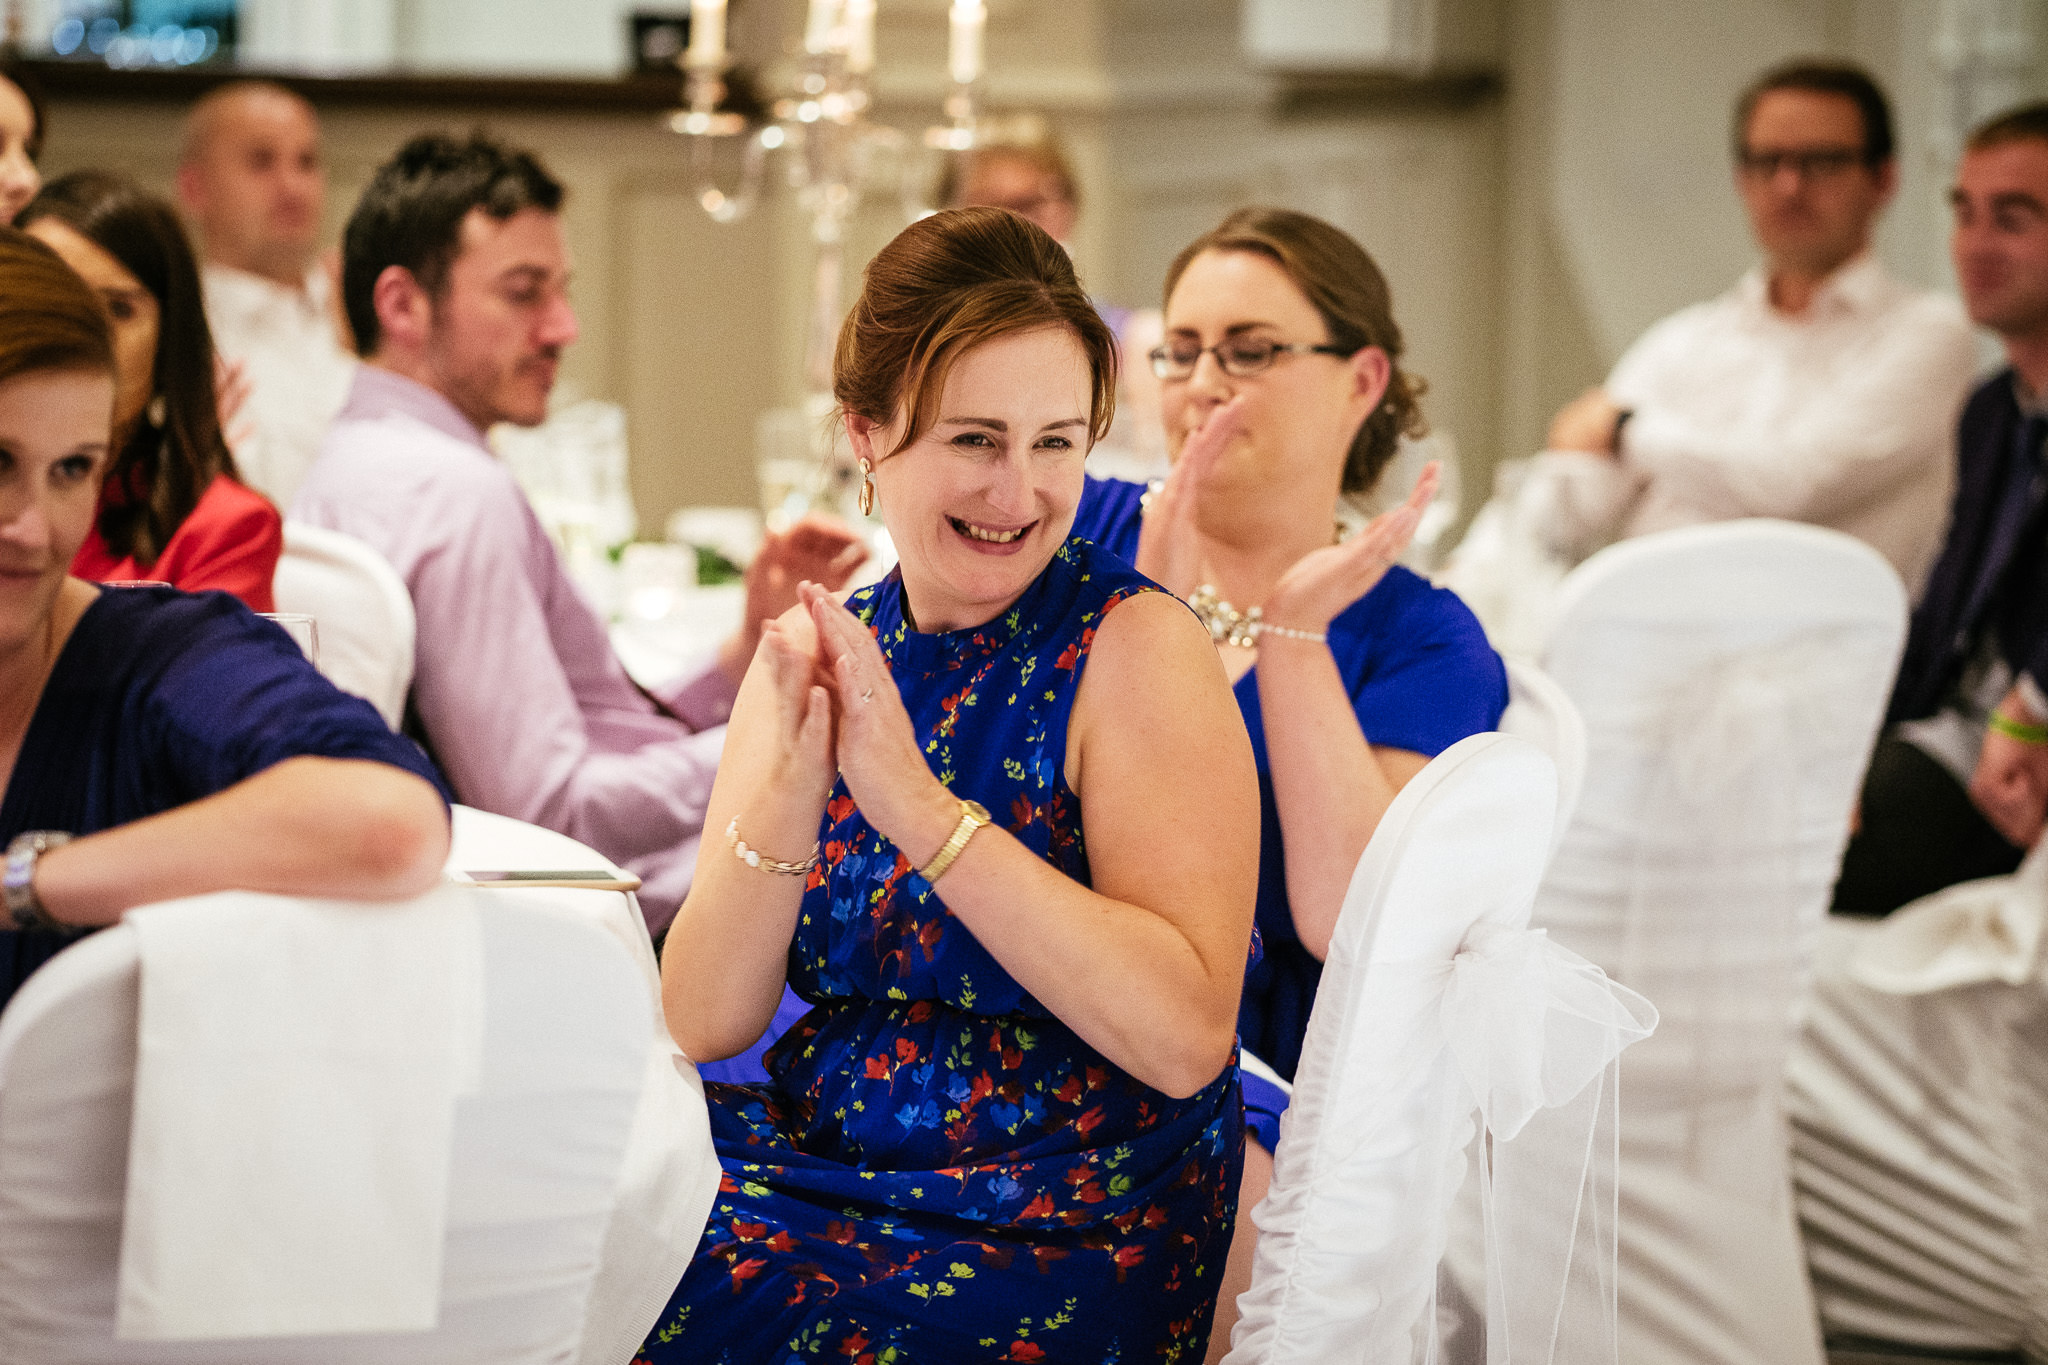 wedding guest clapping hands